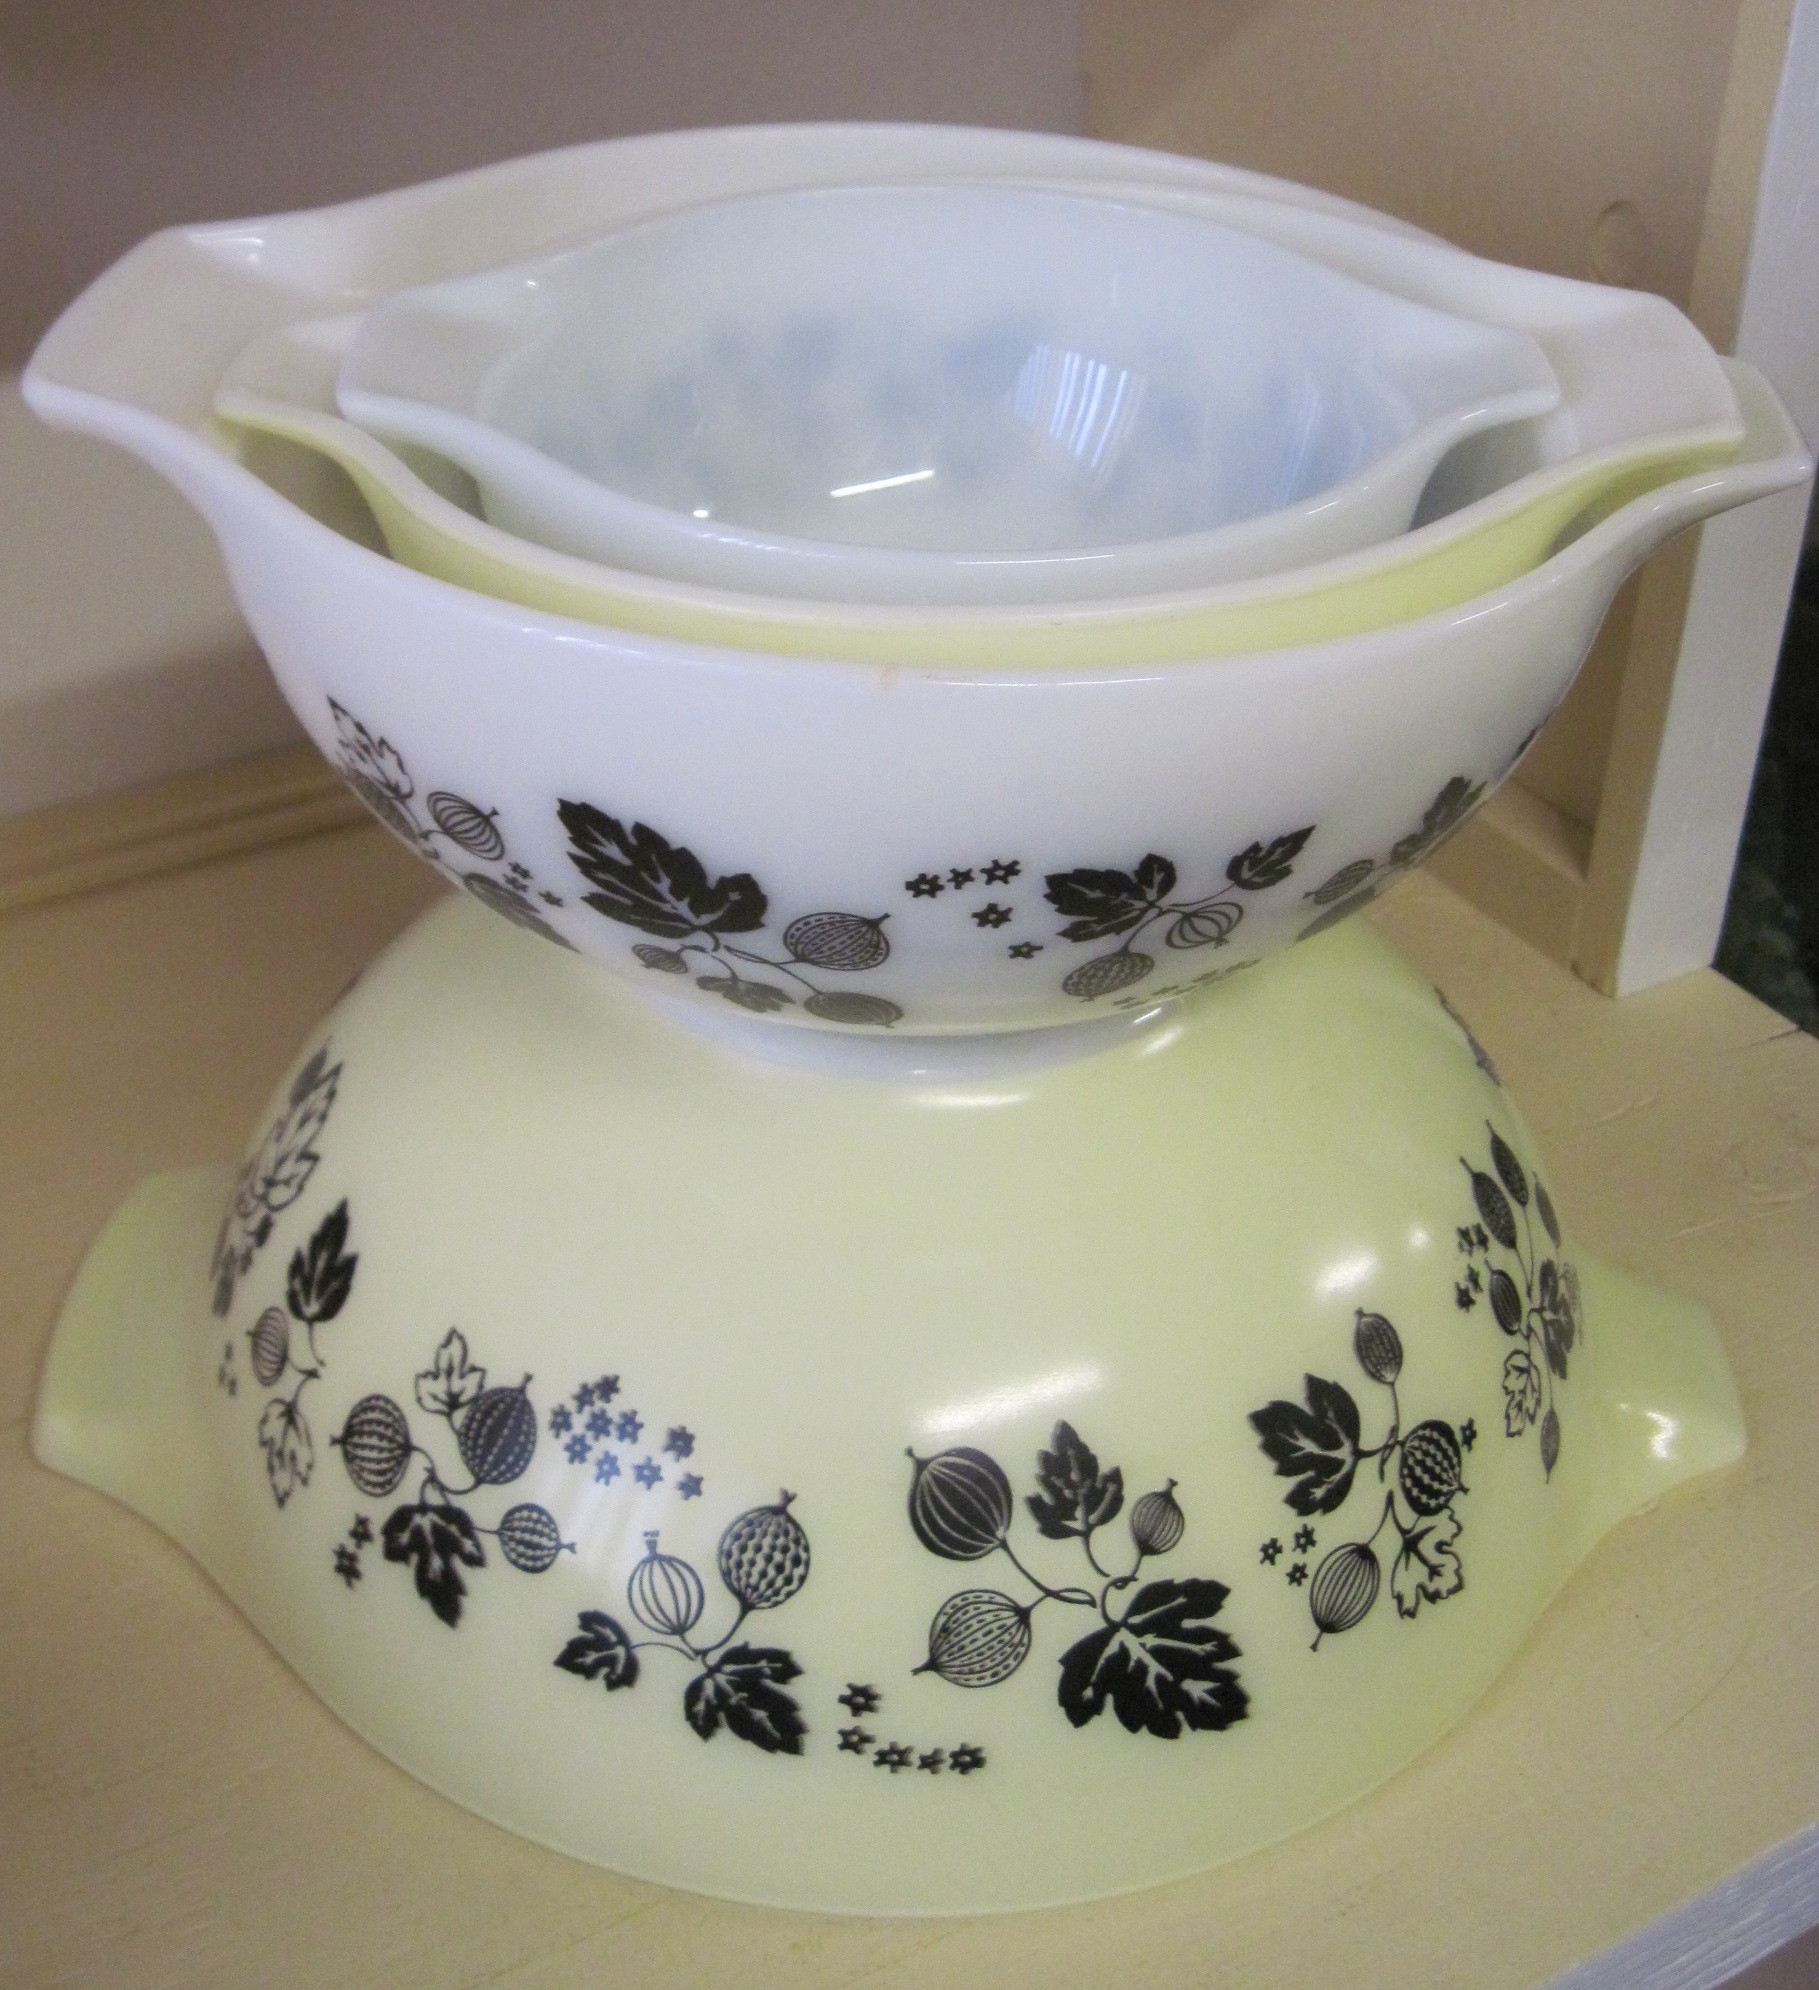 Pyrex Gooseberry Bowls, Black on Yellow and White | fabfindsblog